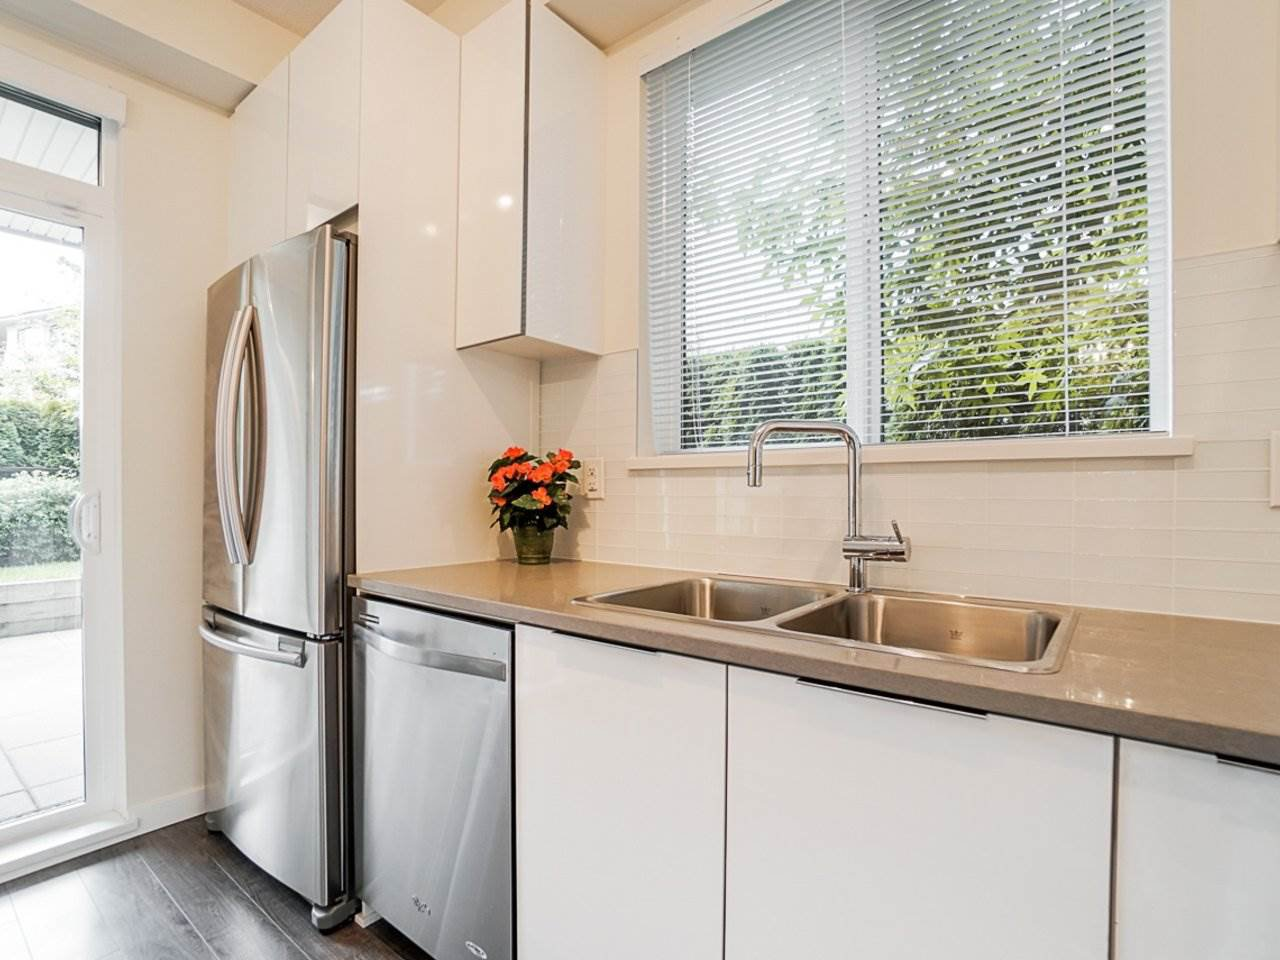 Photo 15: Photos: 108 1151 WINDSOR Mews in Coquitlam: New Horizons Condo for sale : MLS®# R2500299